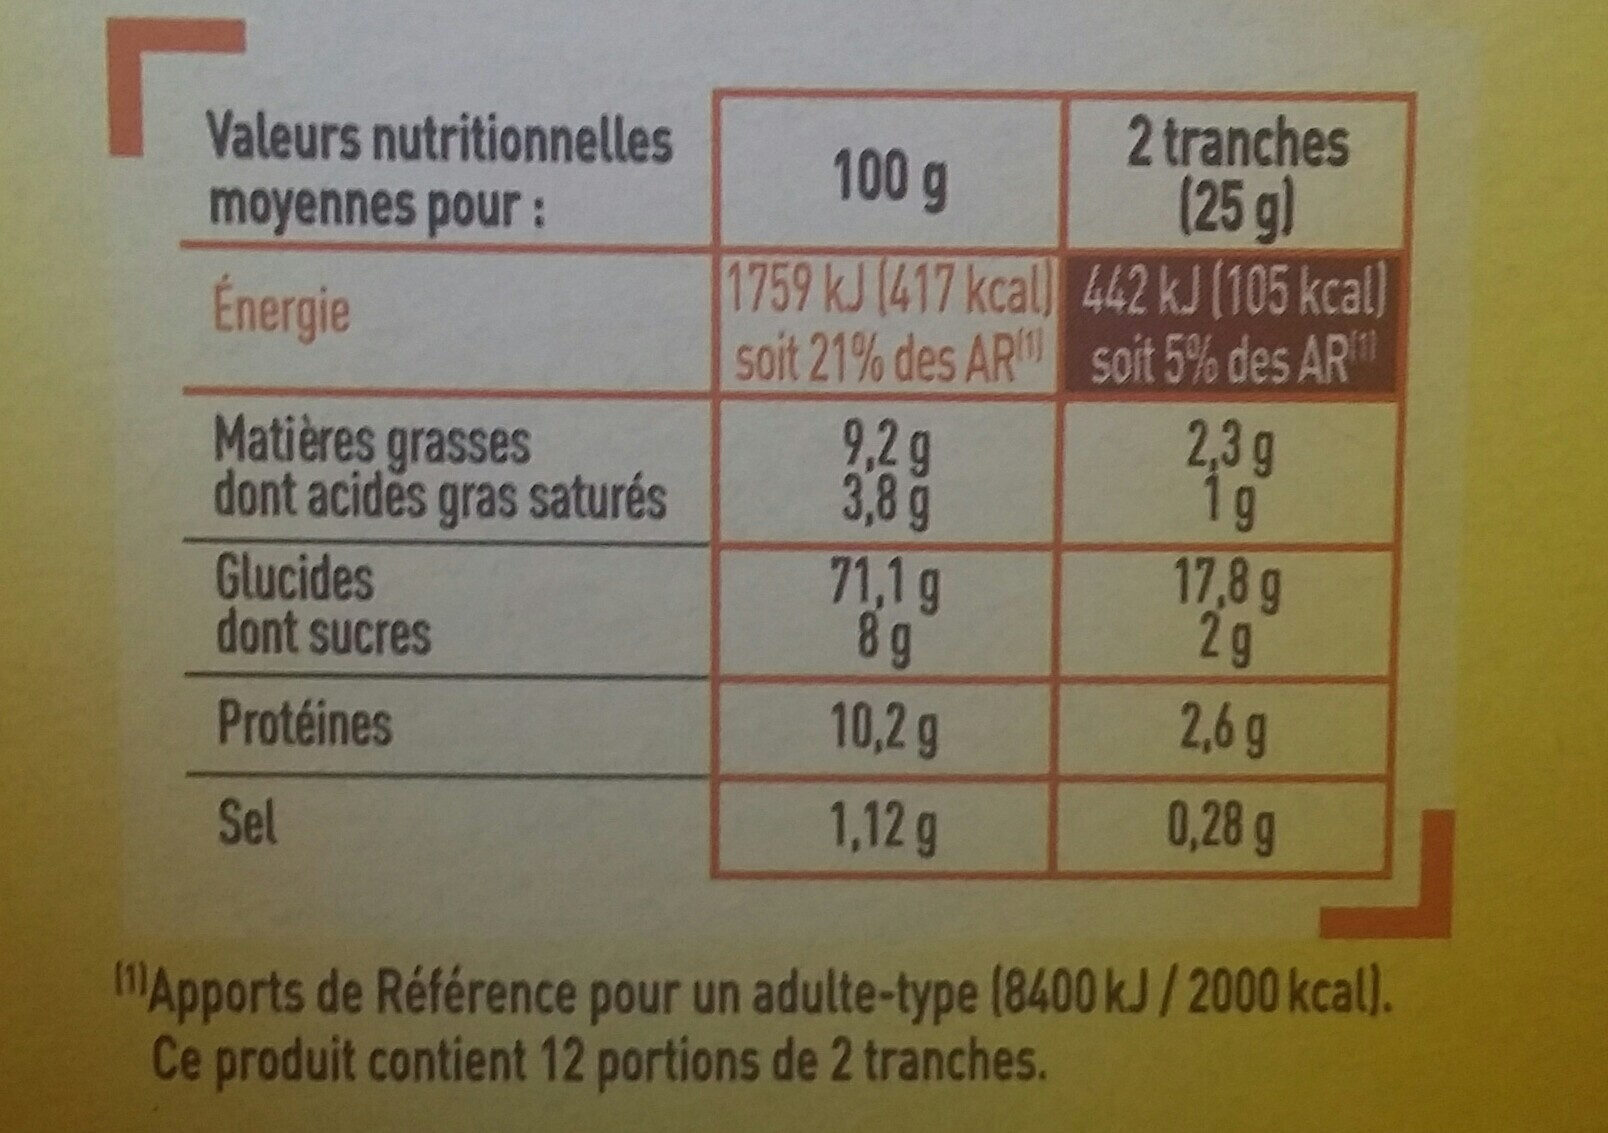 Fines tranches briochées 24 tranches - Nutrition facts